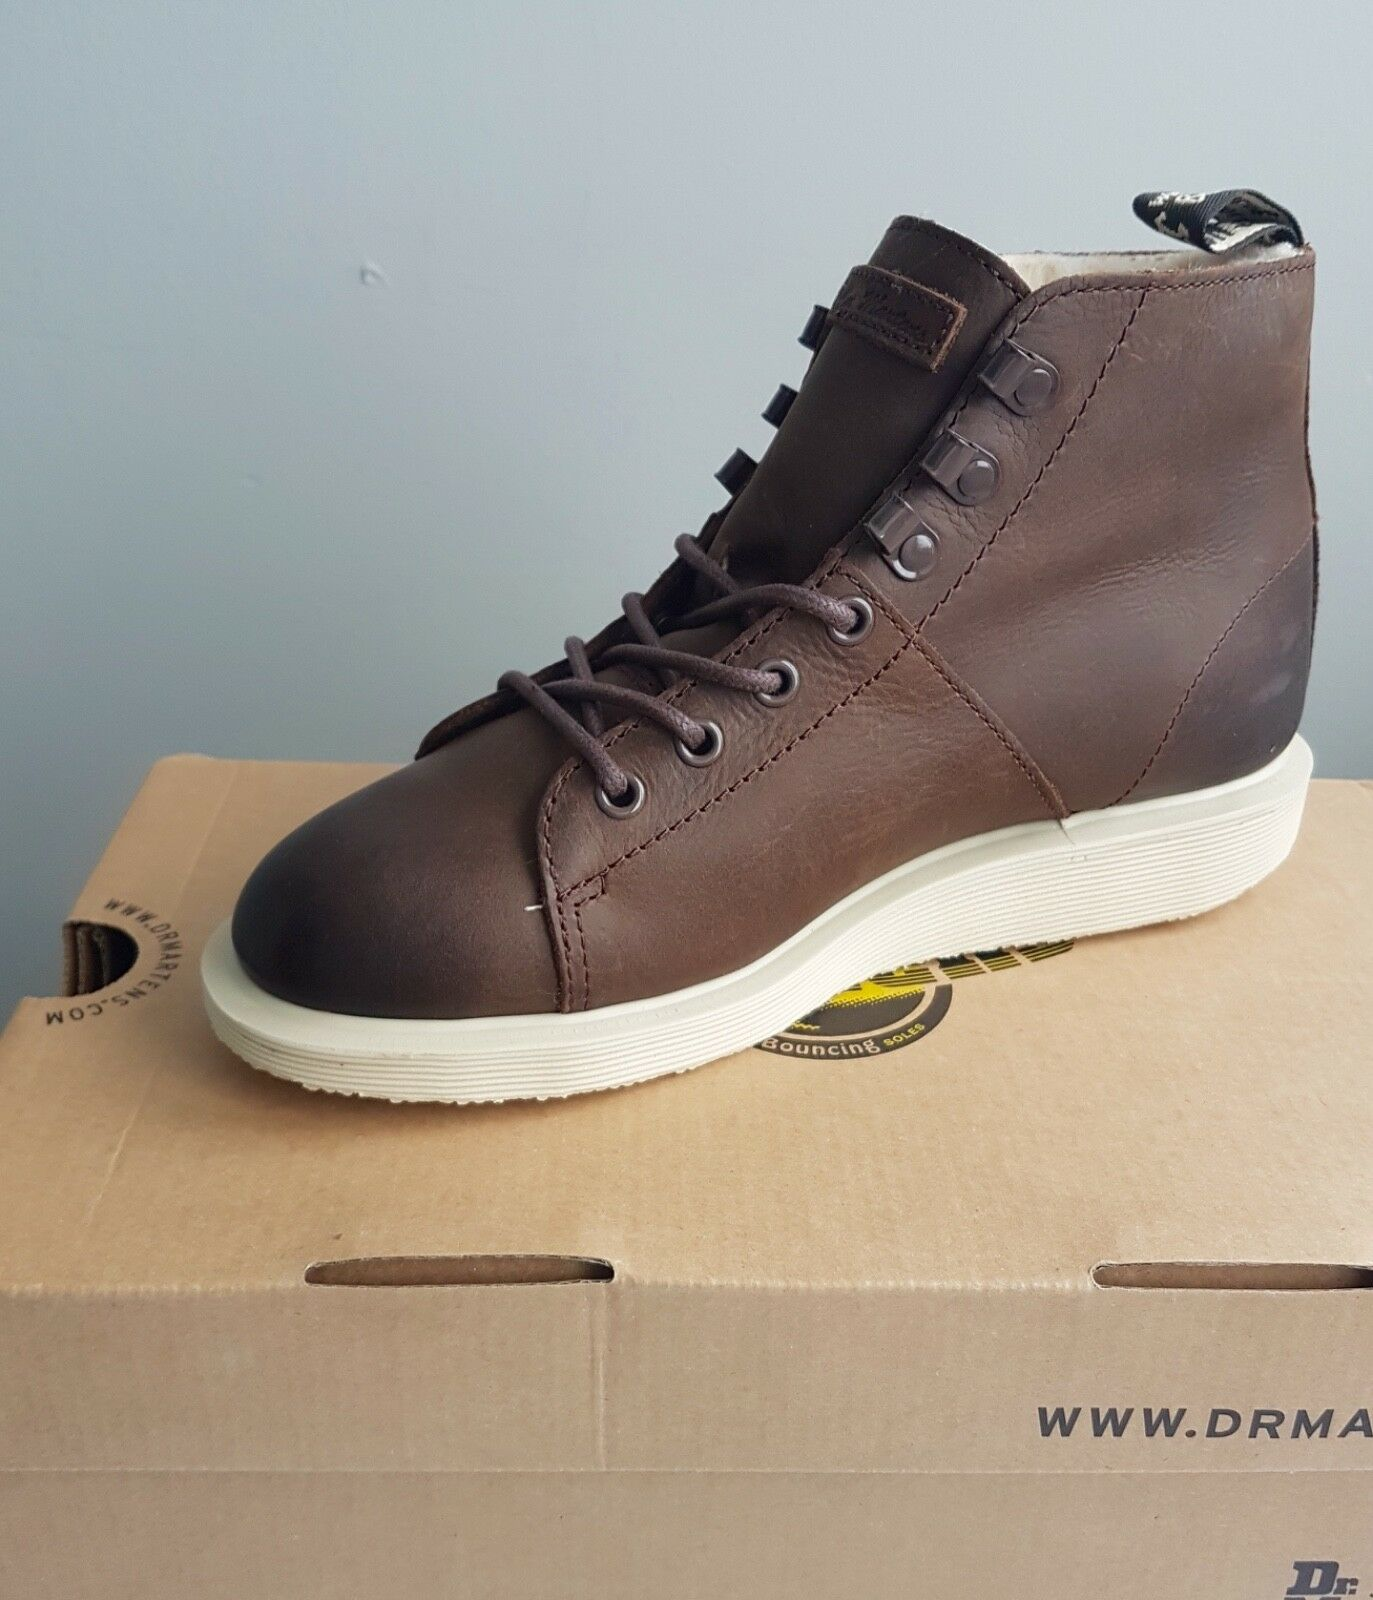 DR. MARTENS WOMENS UK5 WARM FLEECE LINED WYOMING LEATHER TRAINER BOOT DARK BROWN